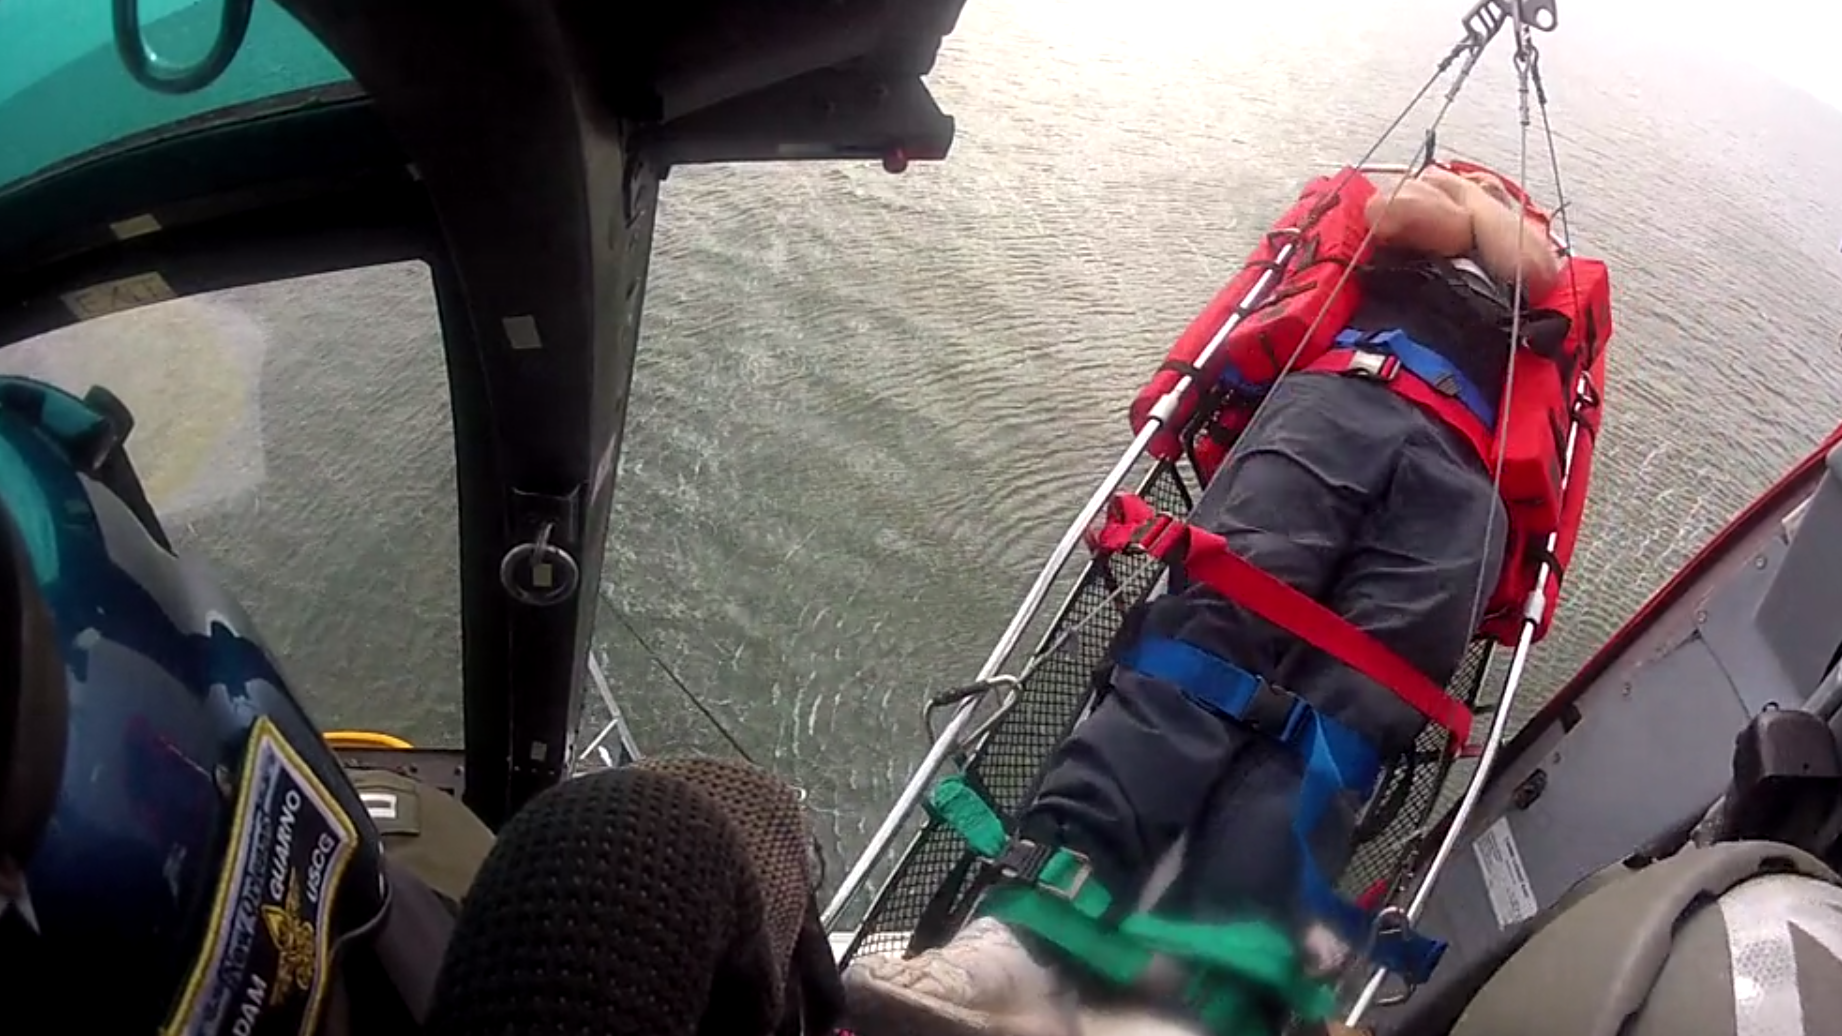 Boater rescued with help of U.S. Coast Guard